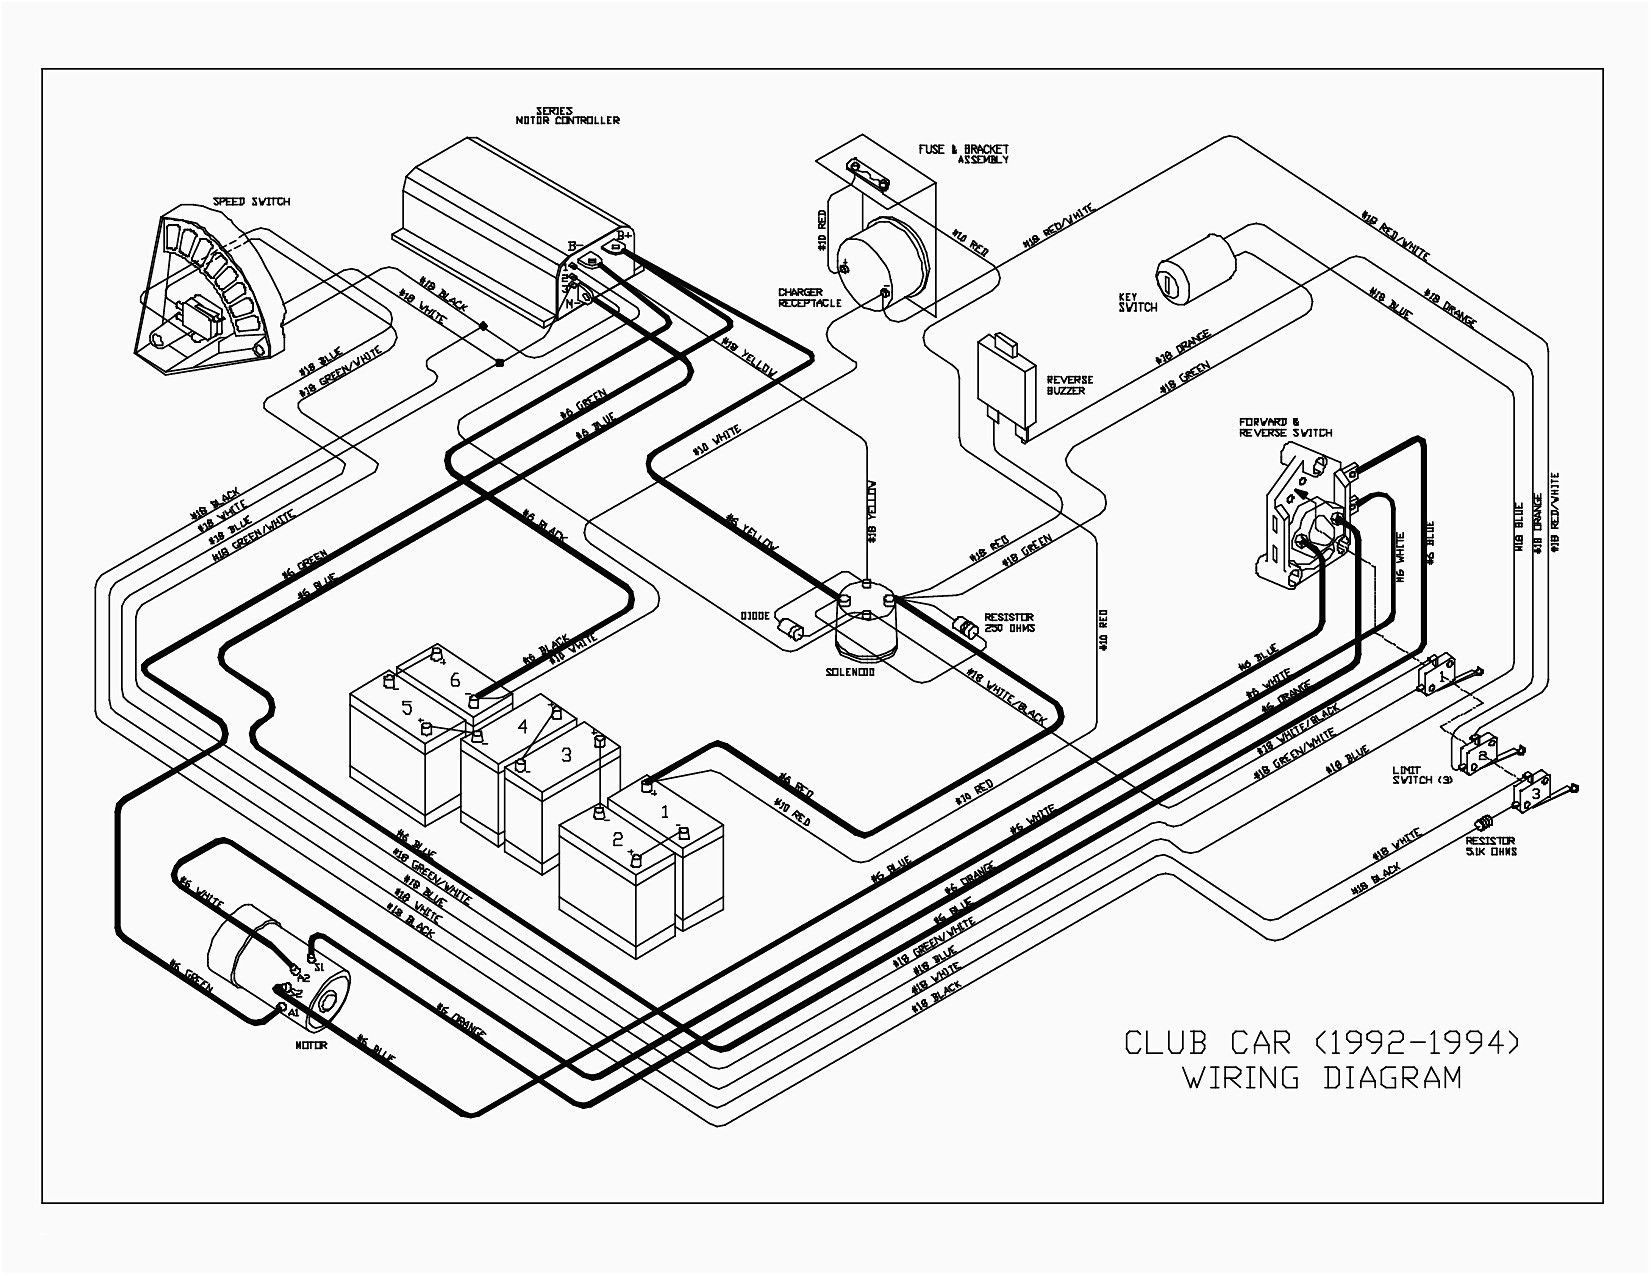 17 Simple Car Wiring Diagrams Design